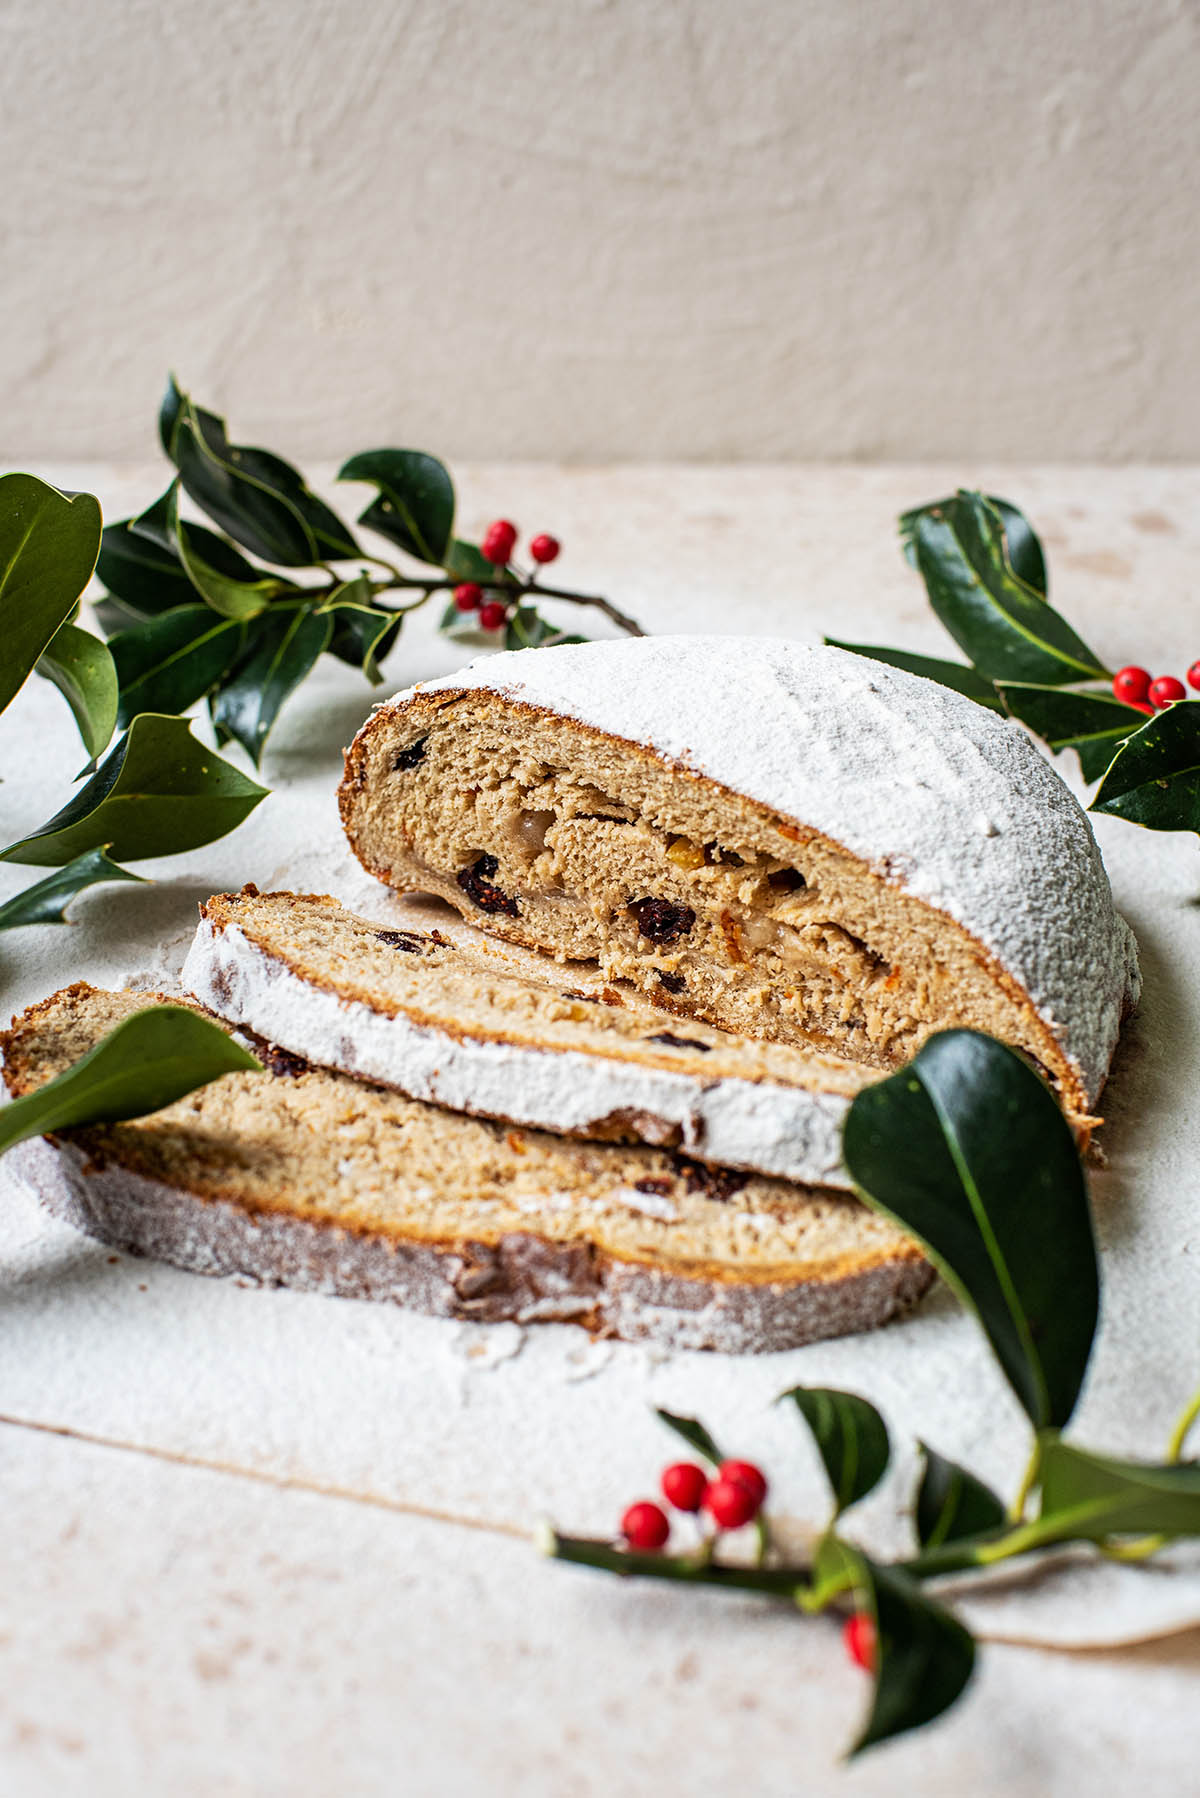 Stollen with two slices cut and holly surround.